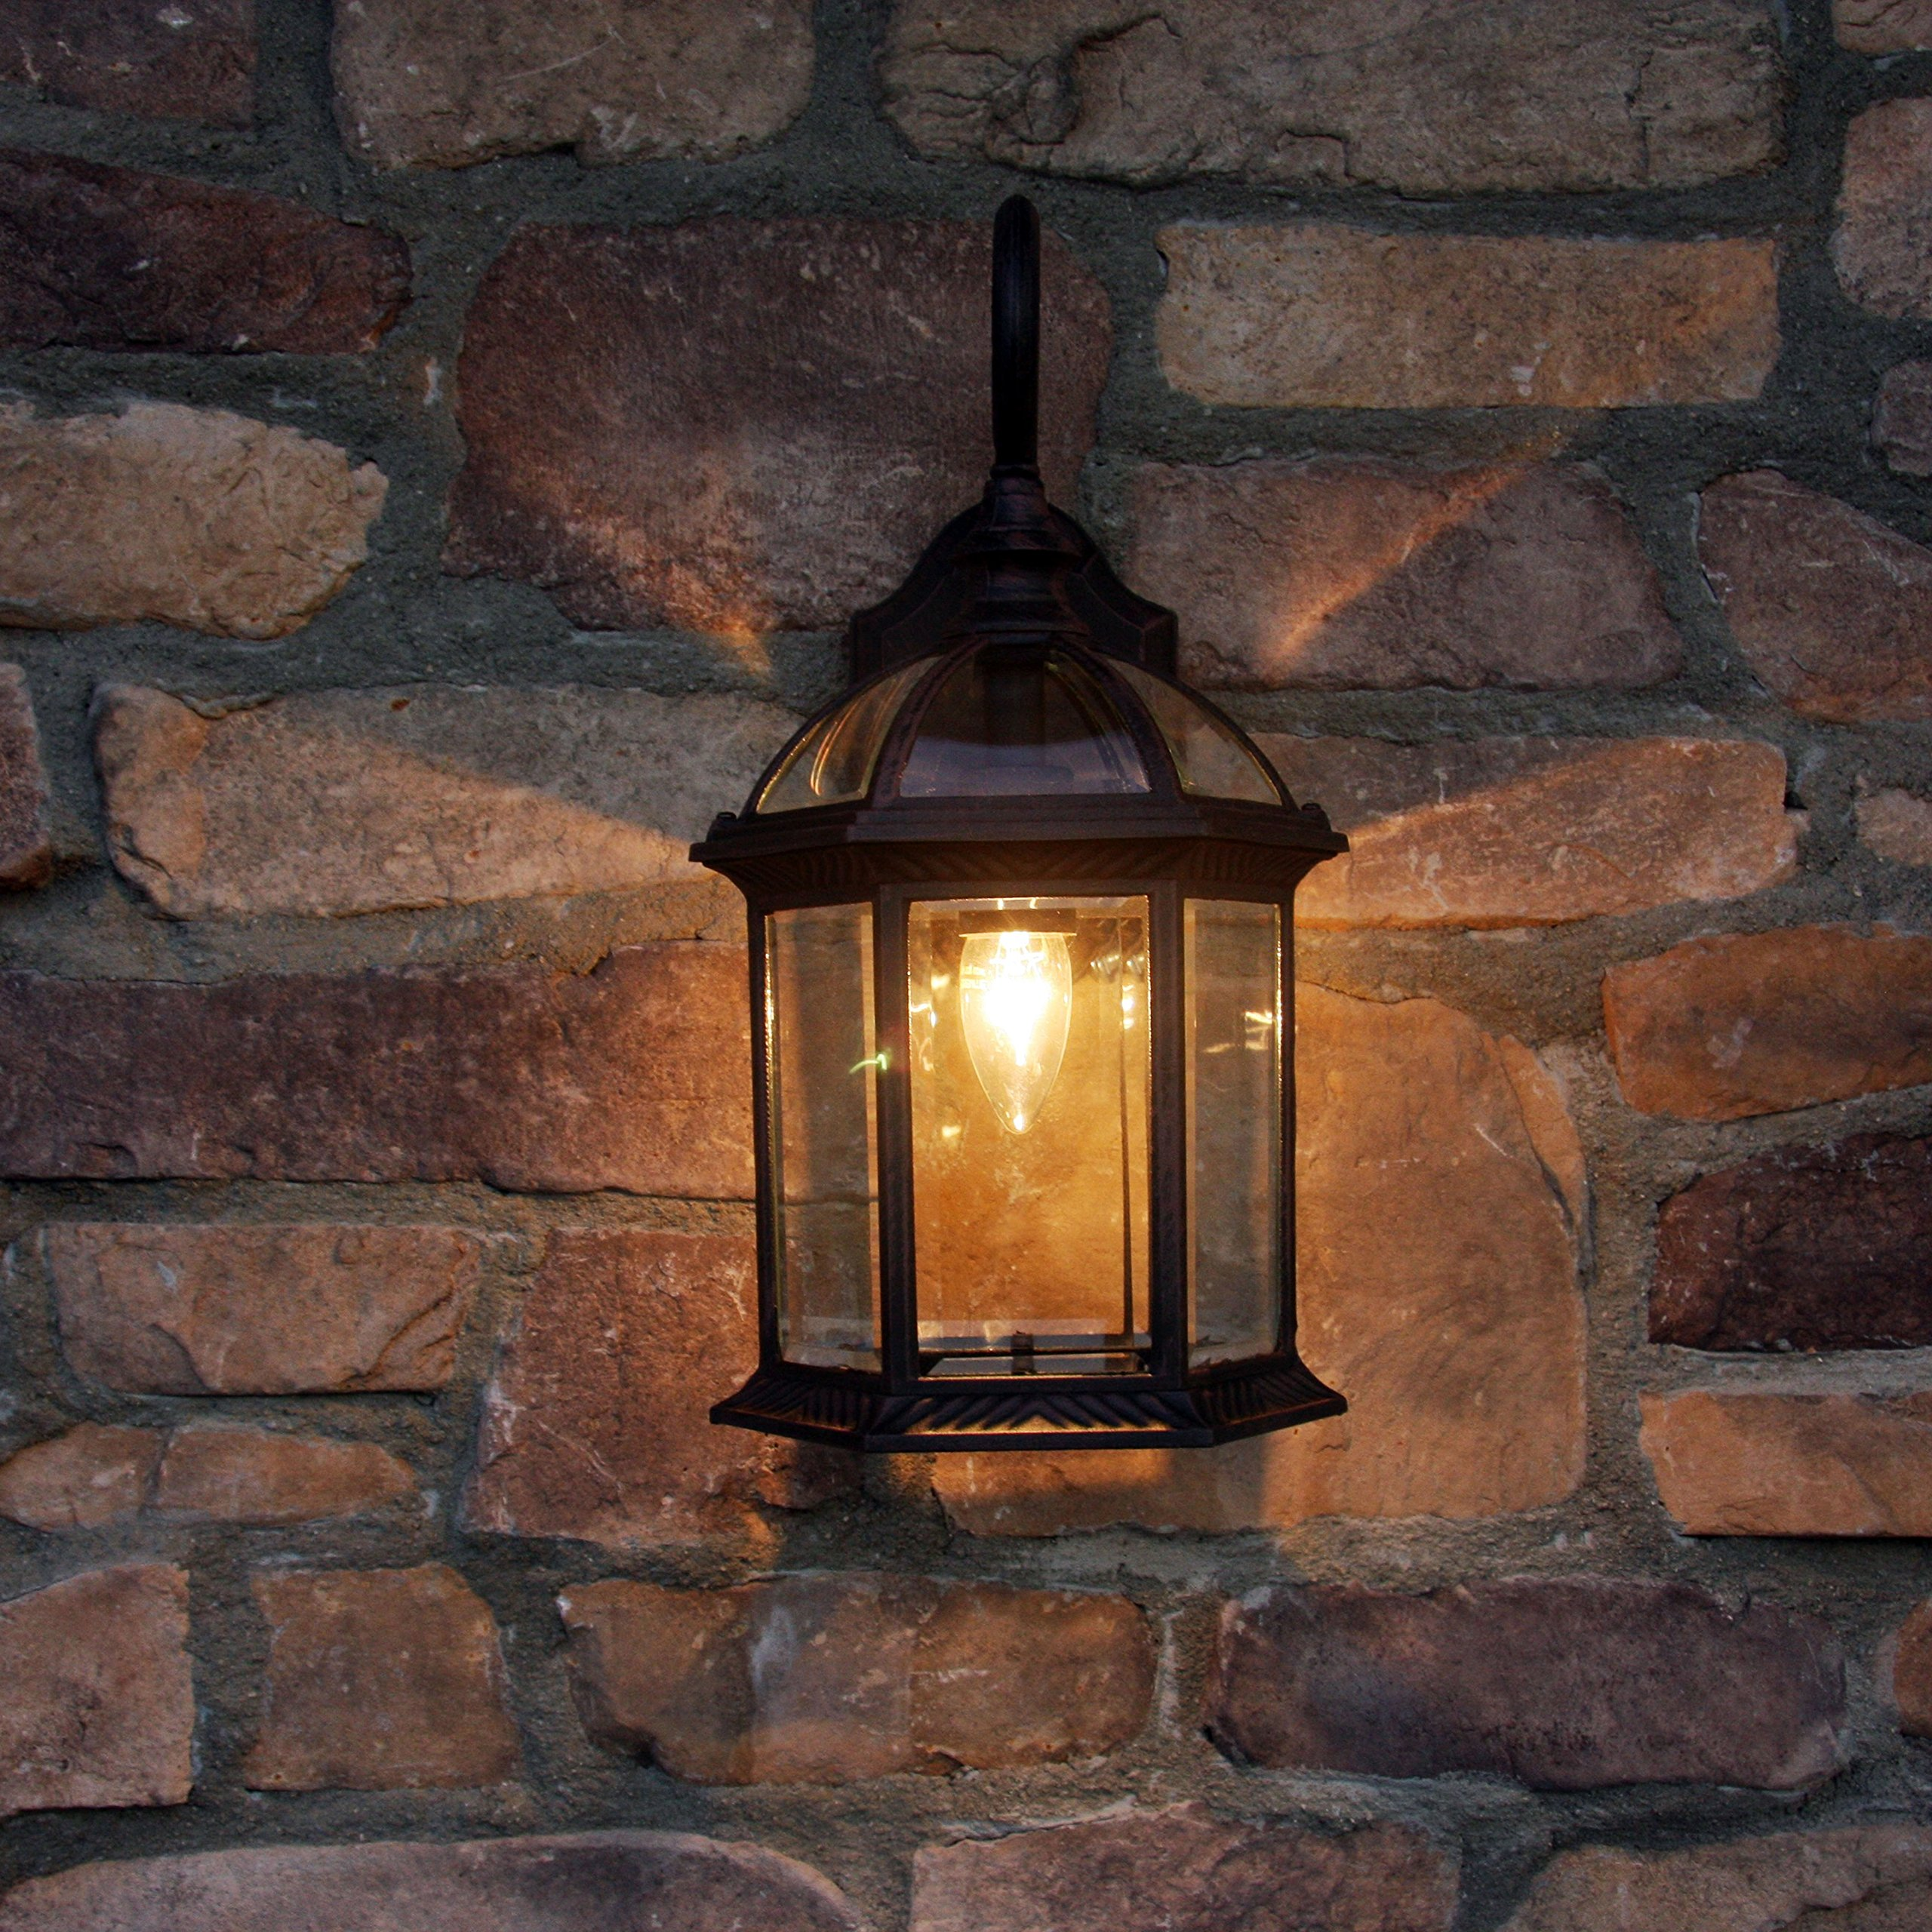 Y Decor EL52VB Modern, Transitional, Traditional Exterior Outdoor Wall Scone 1 Light Bronze with Clear Glass By Y Décor, Brown